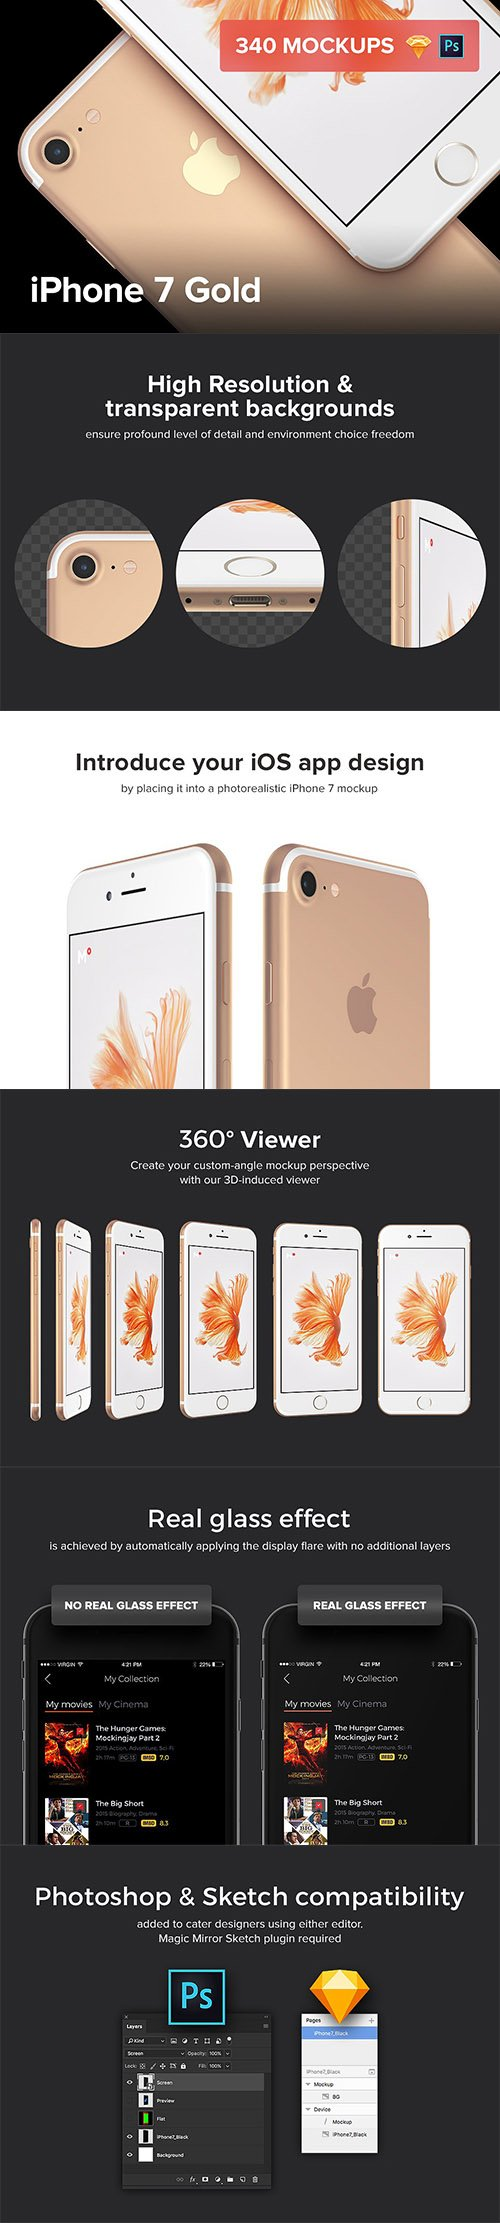 340 iPhone 7 Gold mockups - CM 1247524